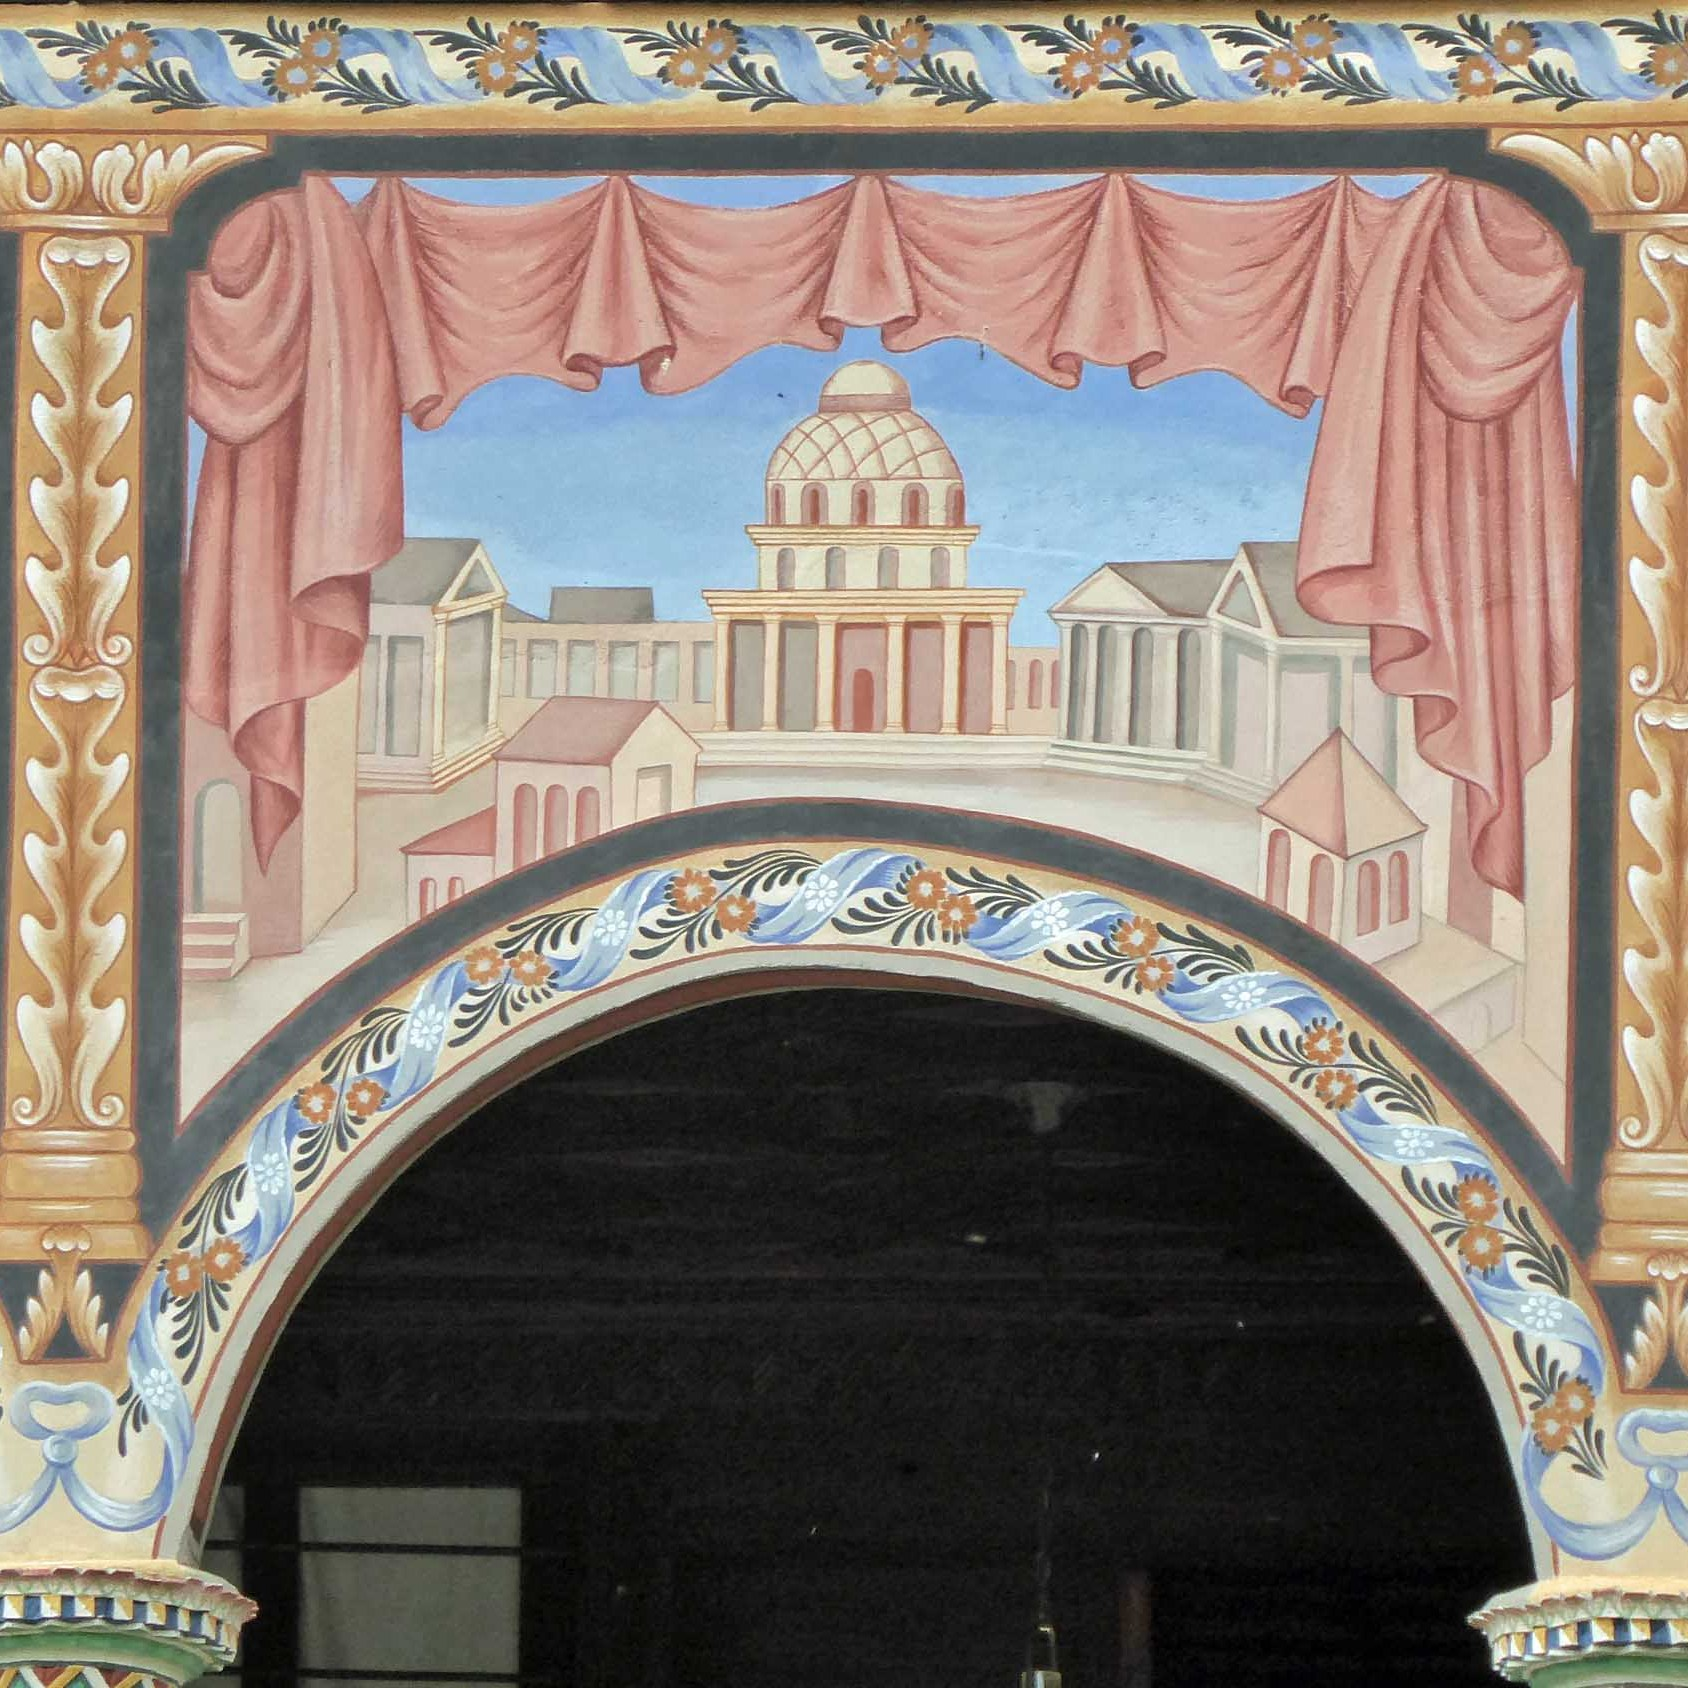 Wall paintings on an arch